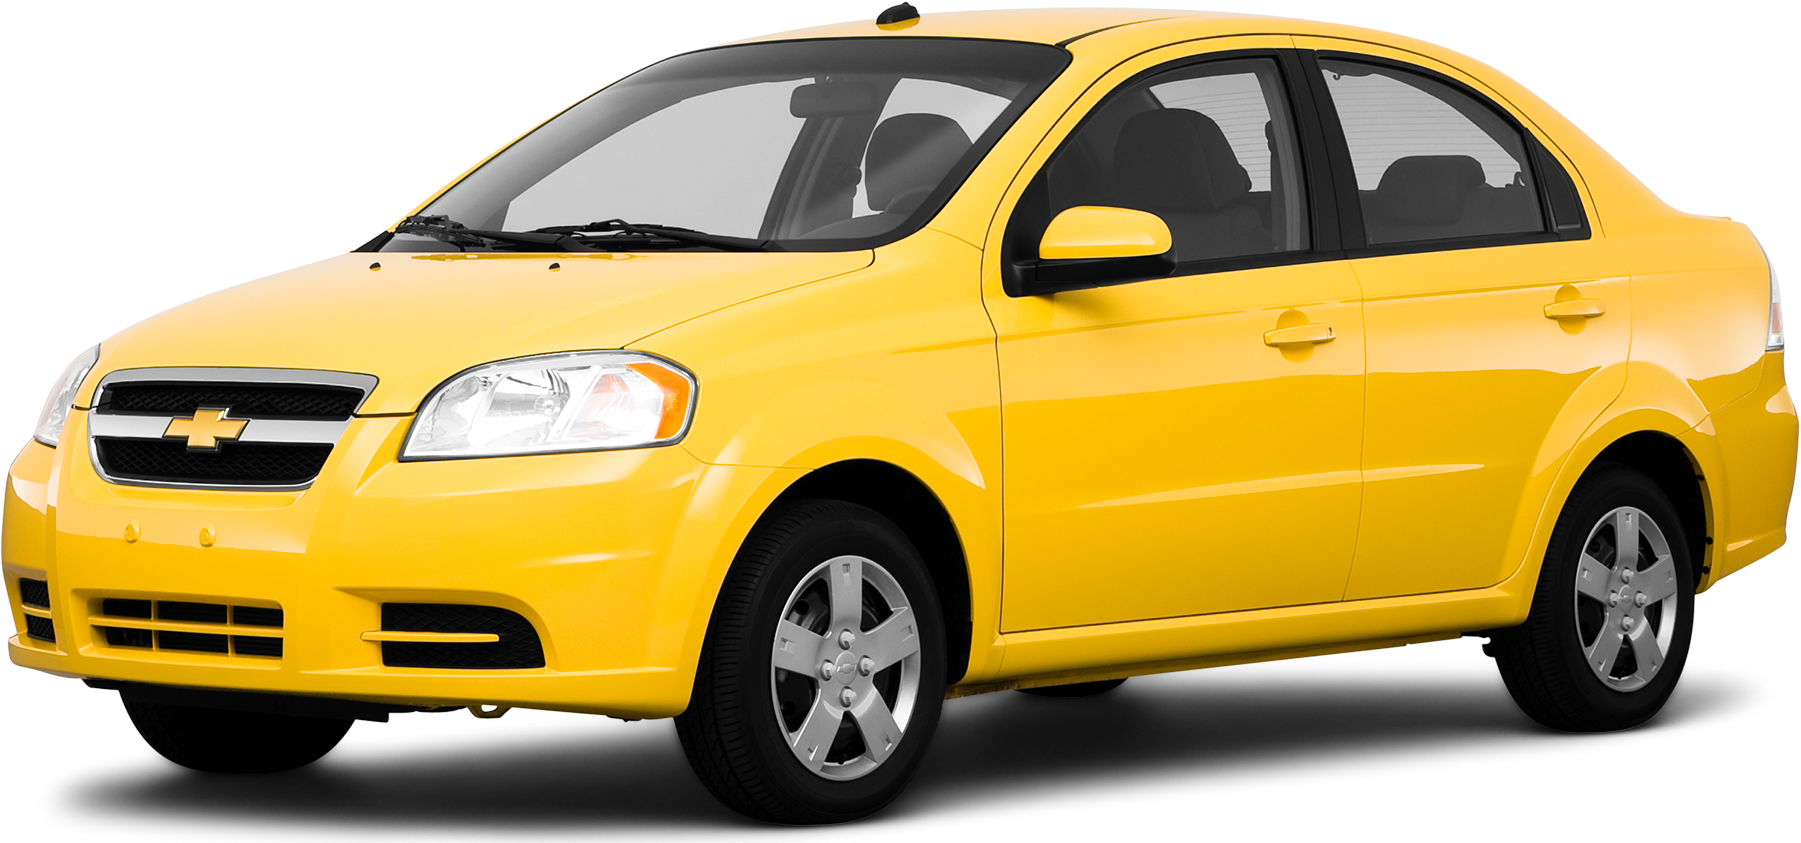 Used 2006 Chevrolet Aveo Values Cars For Sale Kelley Blue Book